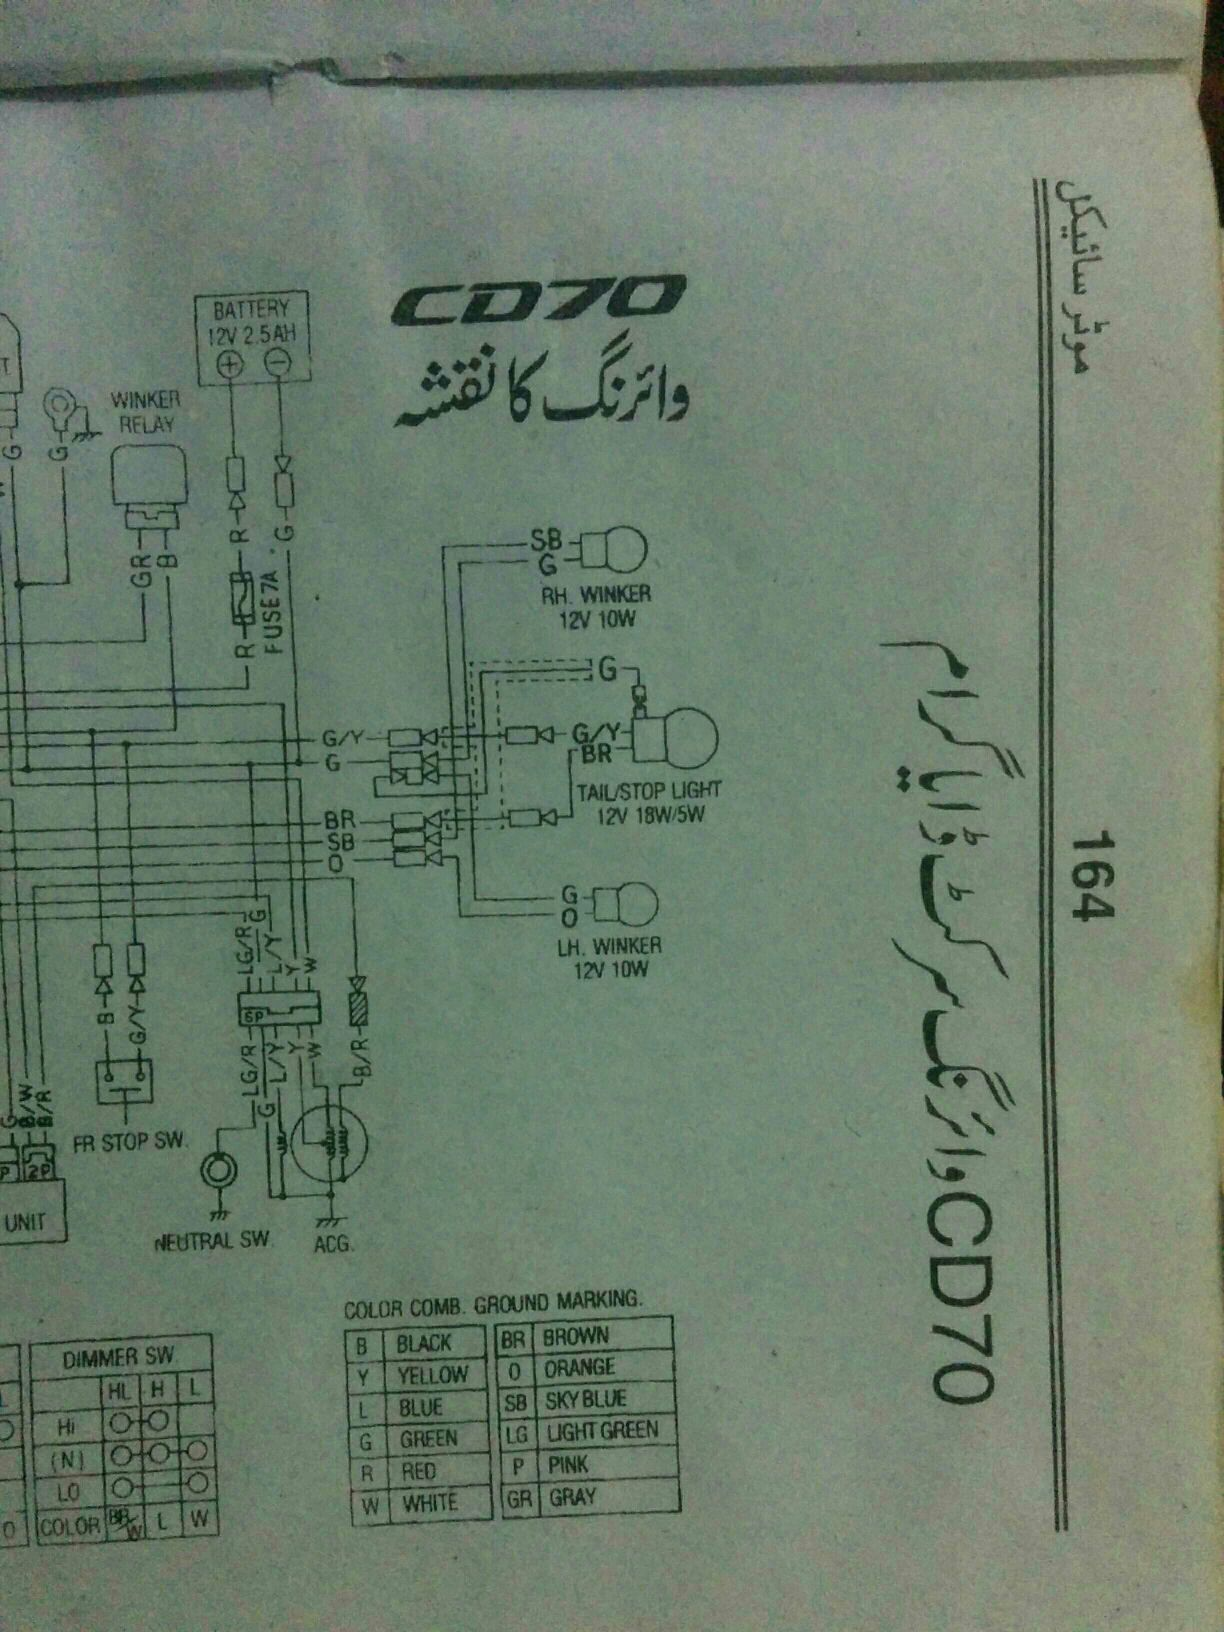 hight resolution of wiring diagram of honda motorcycle cd 70 wiring diagram sheet honda cd 70 motorcycle wiring diagram pdf honda cdi 70 wiring diagram